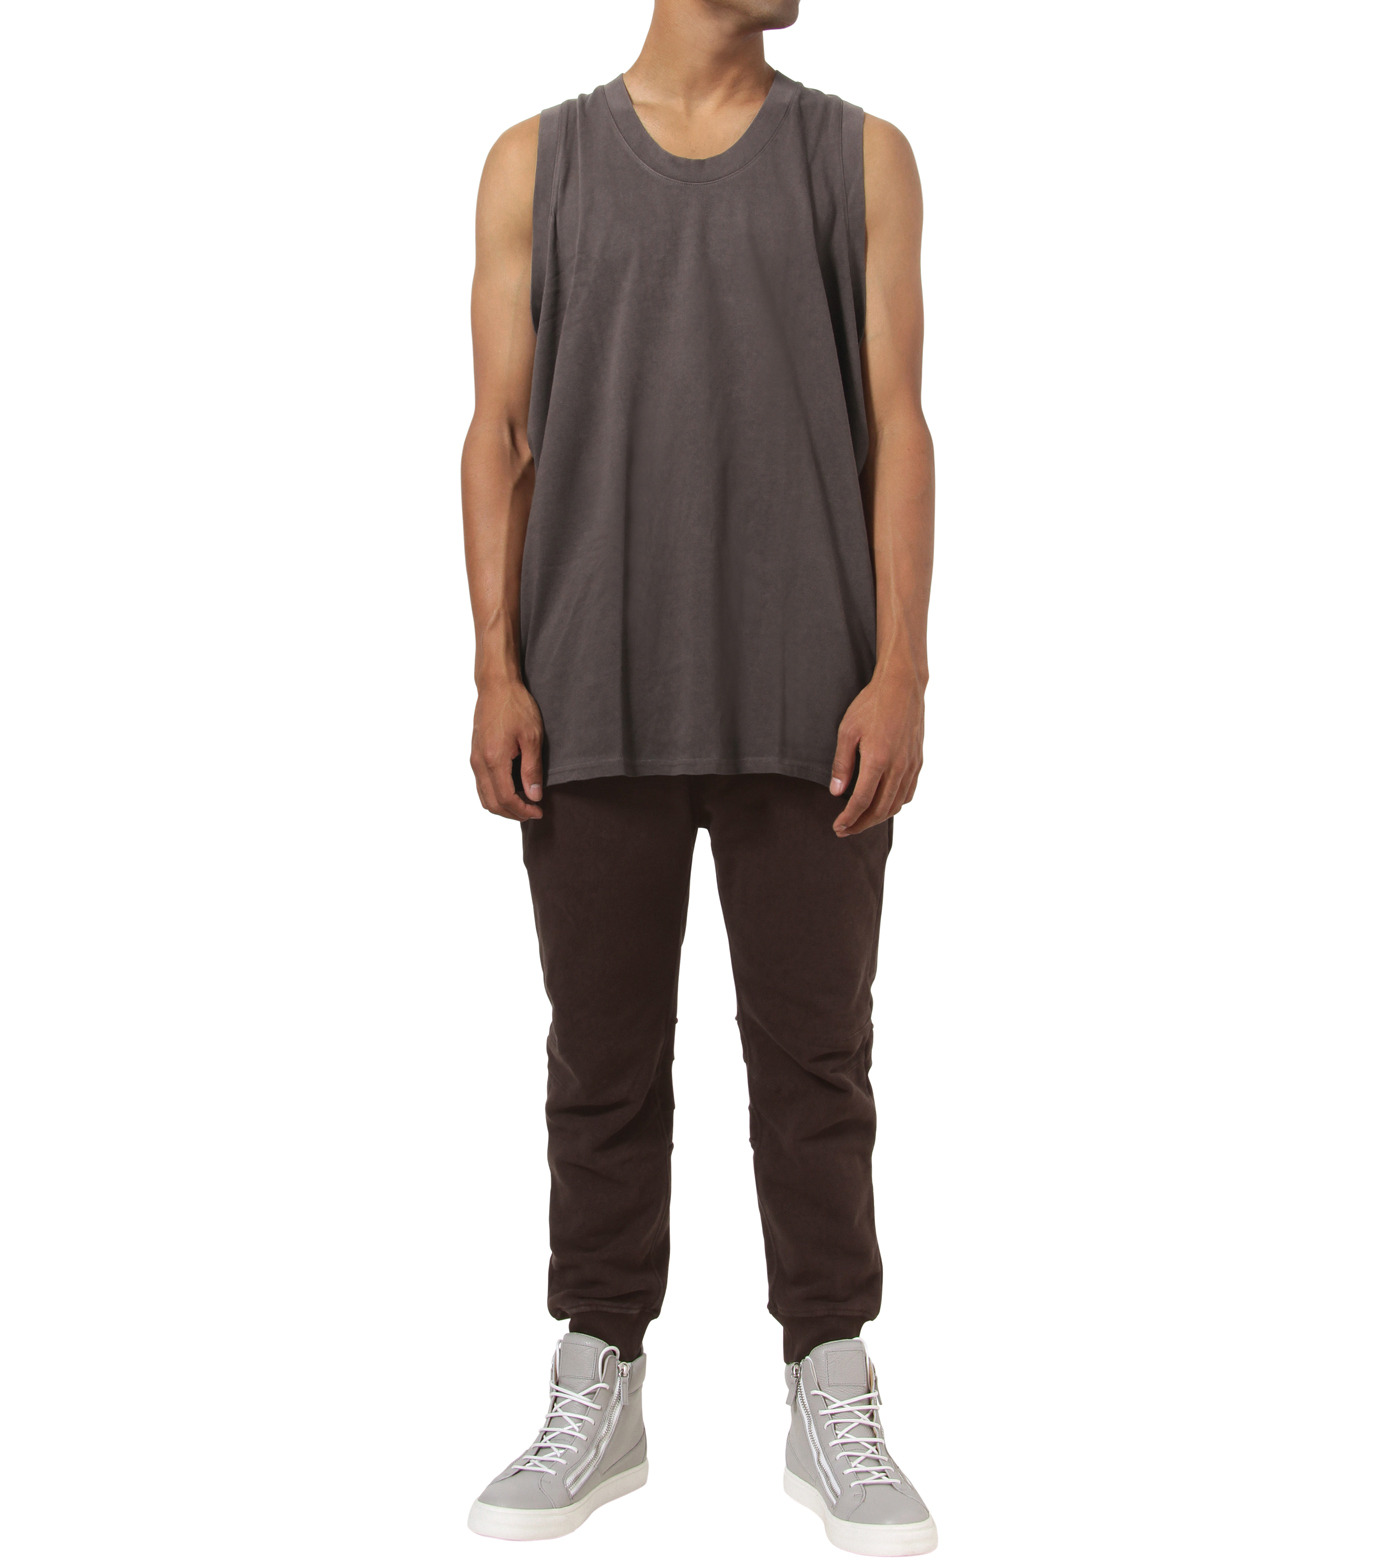 YEEZY adidas(YEEZY adidas)のJersey Tank-BROWN(カットソー/cut and sewn)-AO2609-42 拡大詳細画像3